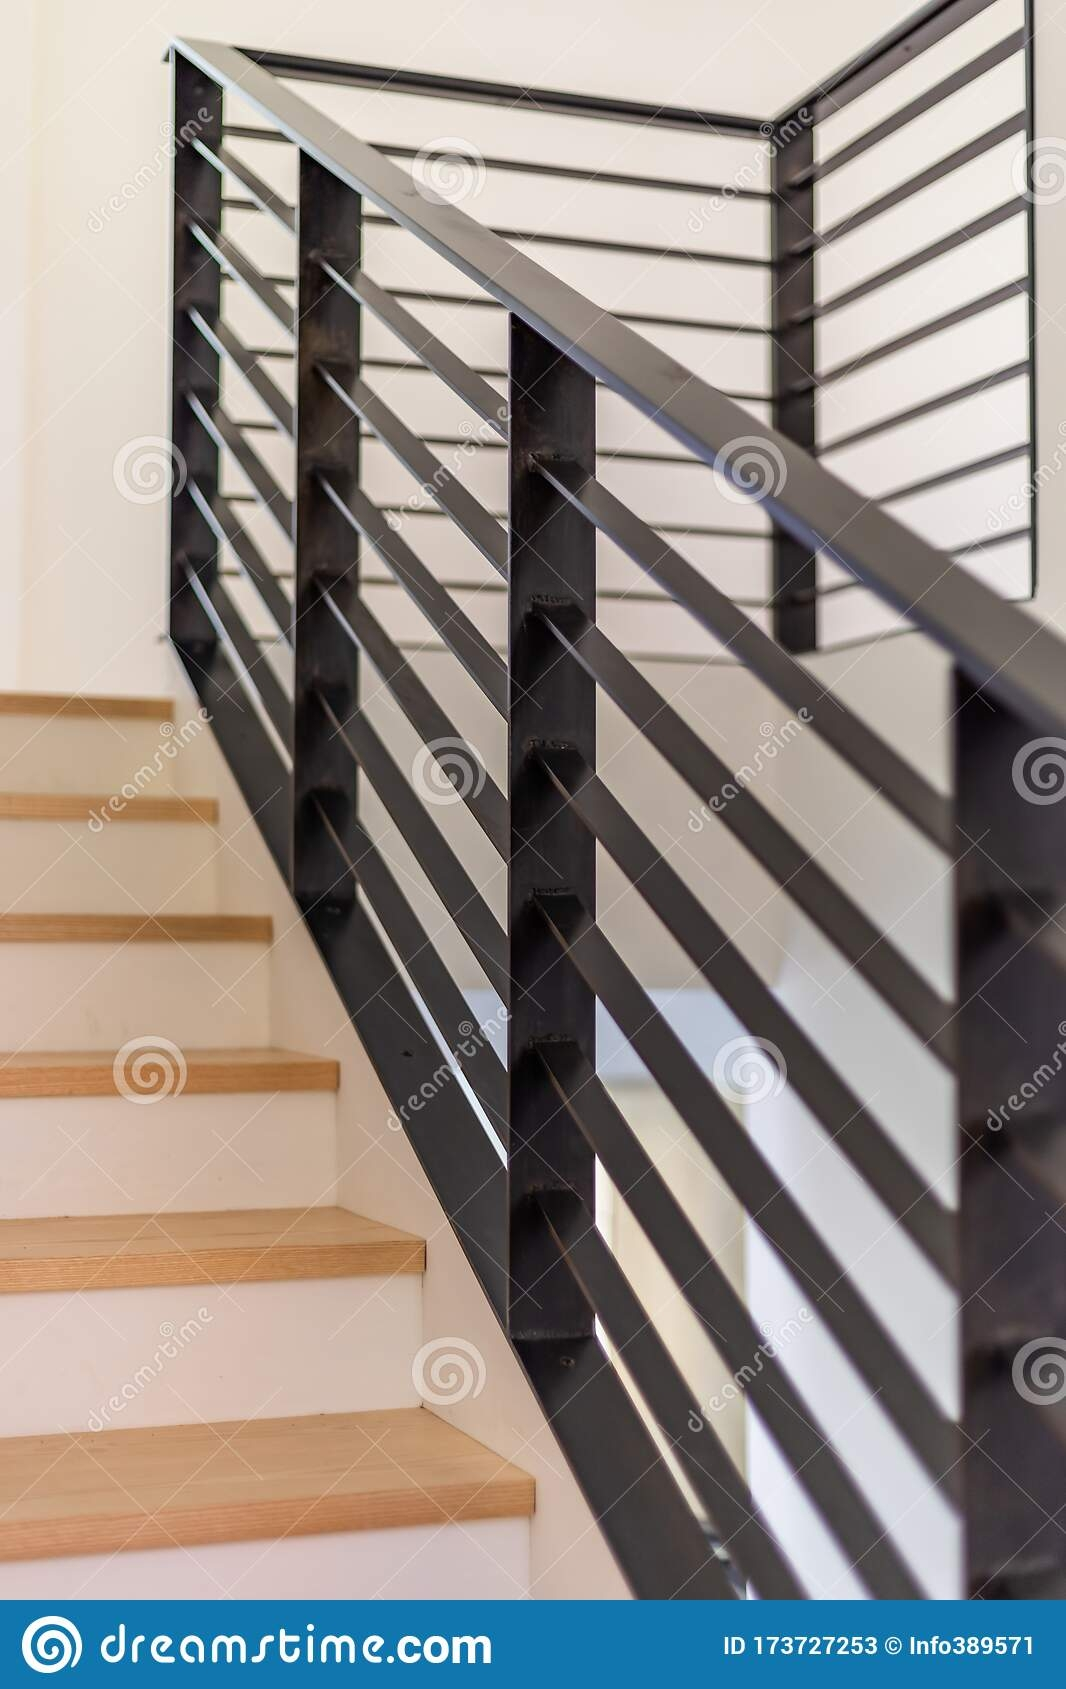 Custom Black Metal Stair Railing Stock Image Image Of Detail | White Wood Stair Railing | Entryway Stair | Metal | Outdoor Stair | Baluster Curved Stylish Overview Stair | Glass